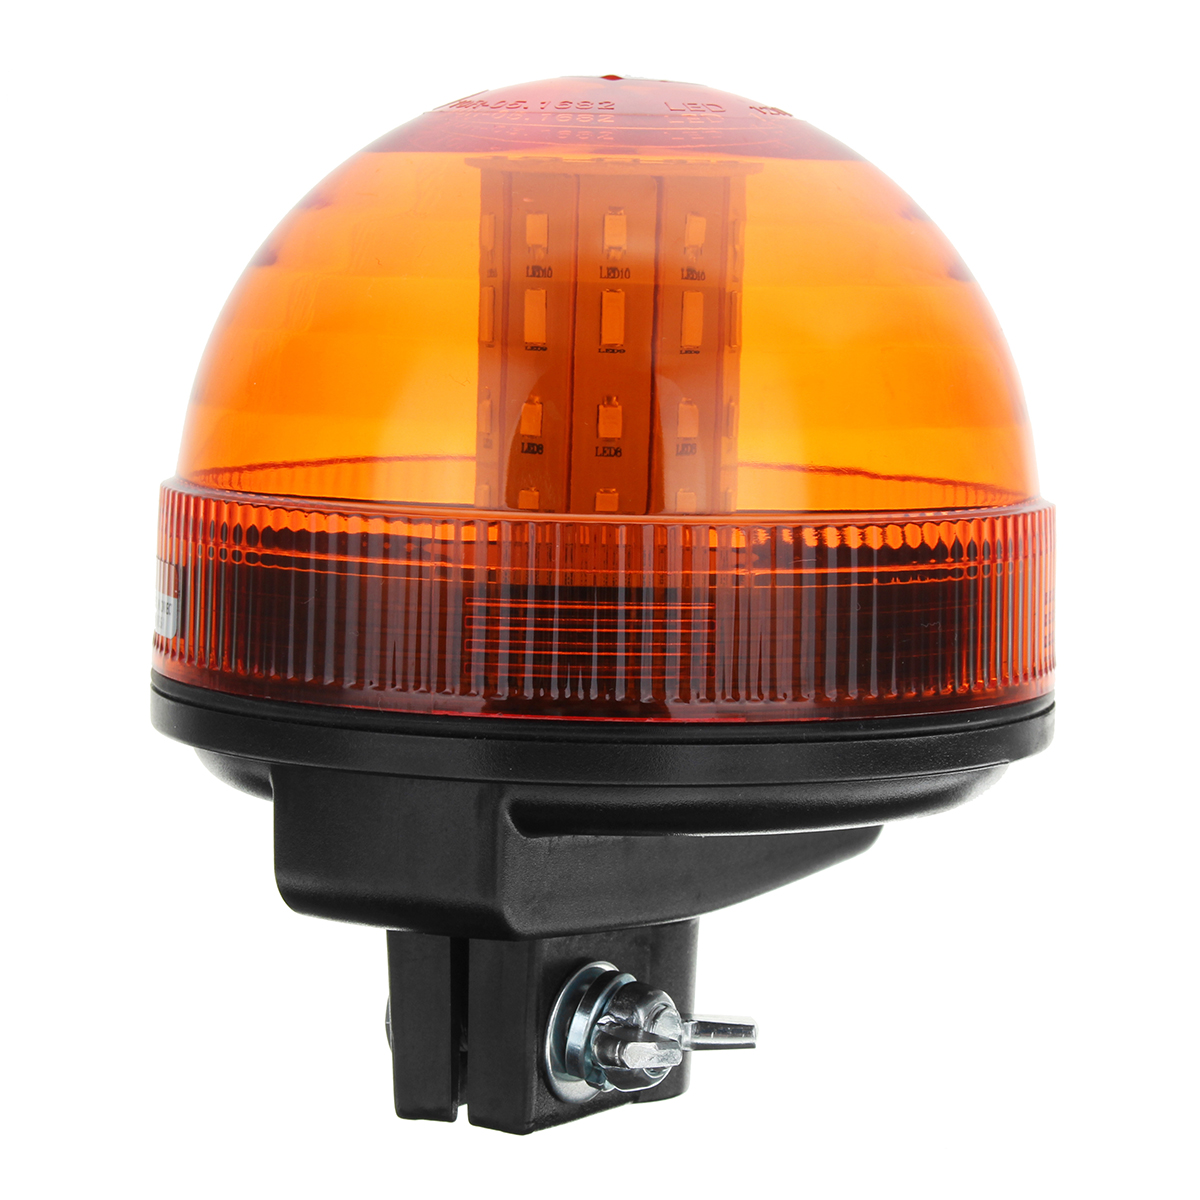 40 LED Rotating Flashing Amber Beacon Flexible Tractor Warning Light Roadway Safety Traffic Light Car Accessories safurance led rotating flashing amber beacon flexible tractor warning light 12v 24v roadway safety